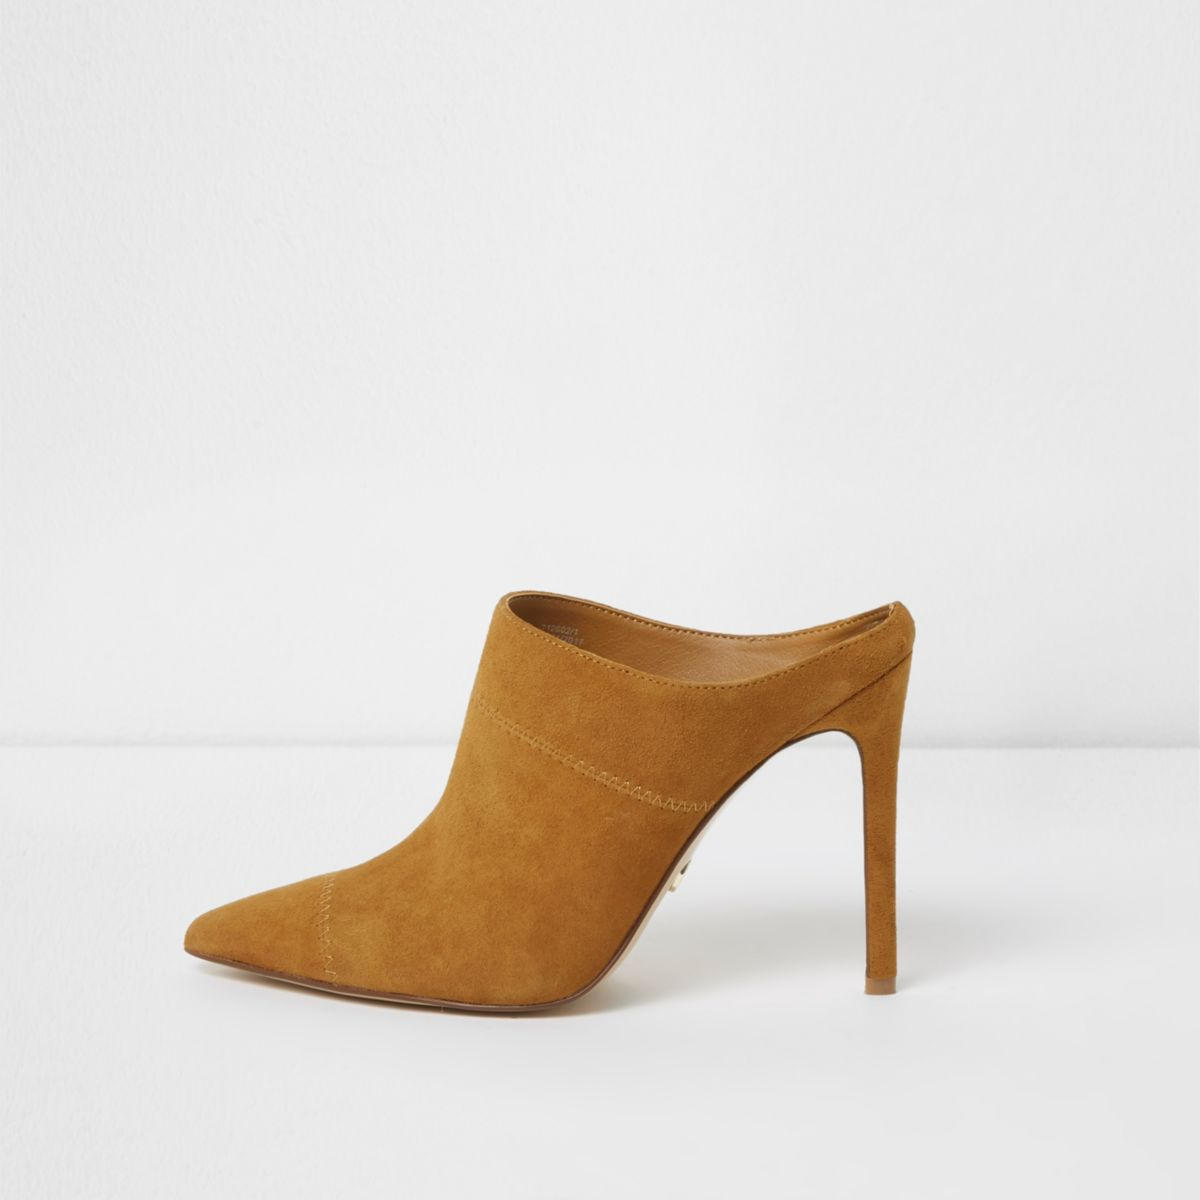 Tan pointed toe stiletto suede mules